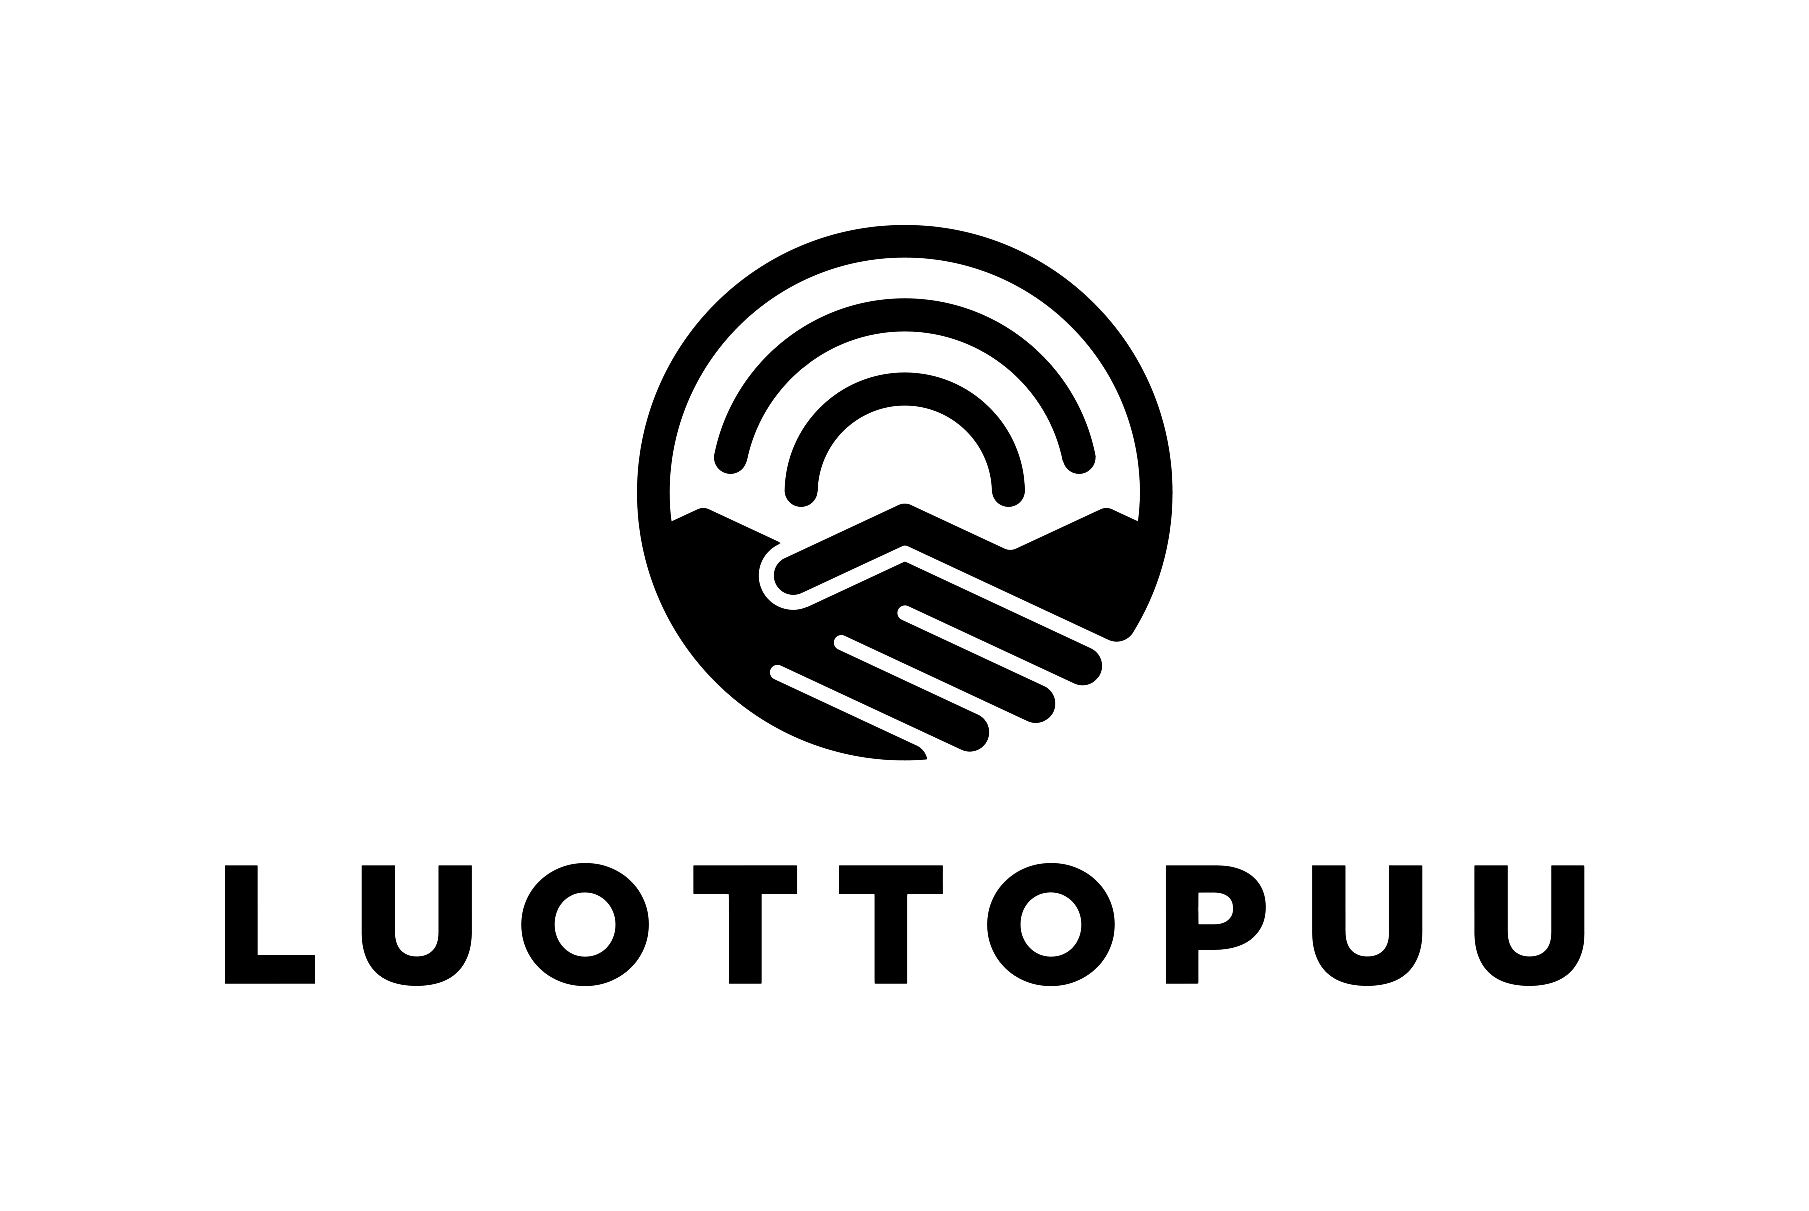 Luottopuu Oy